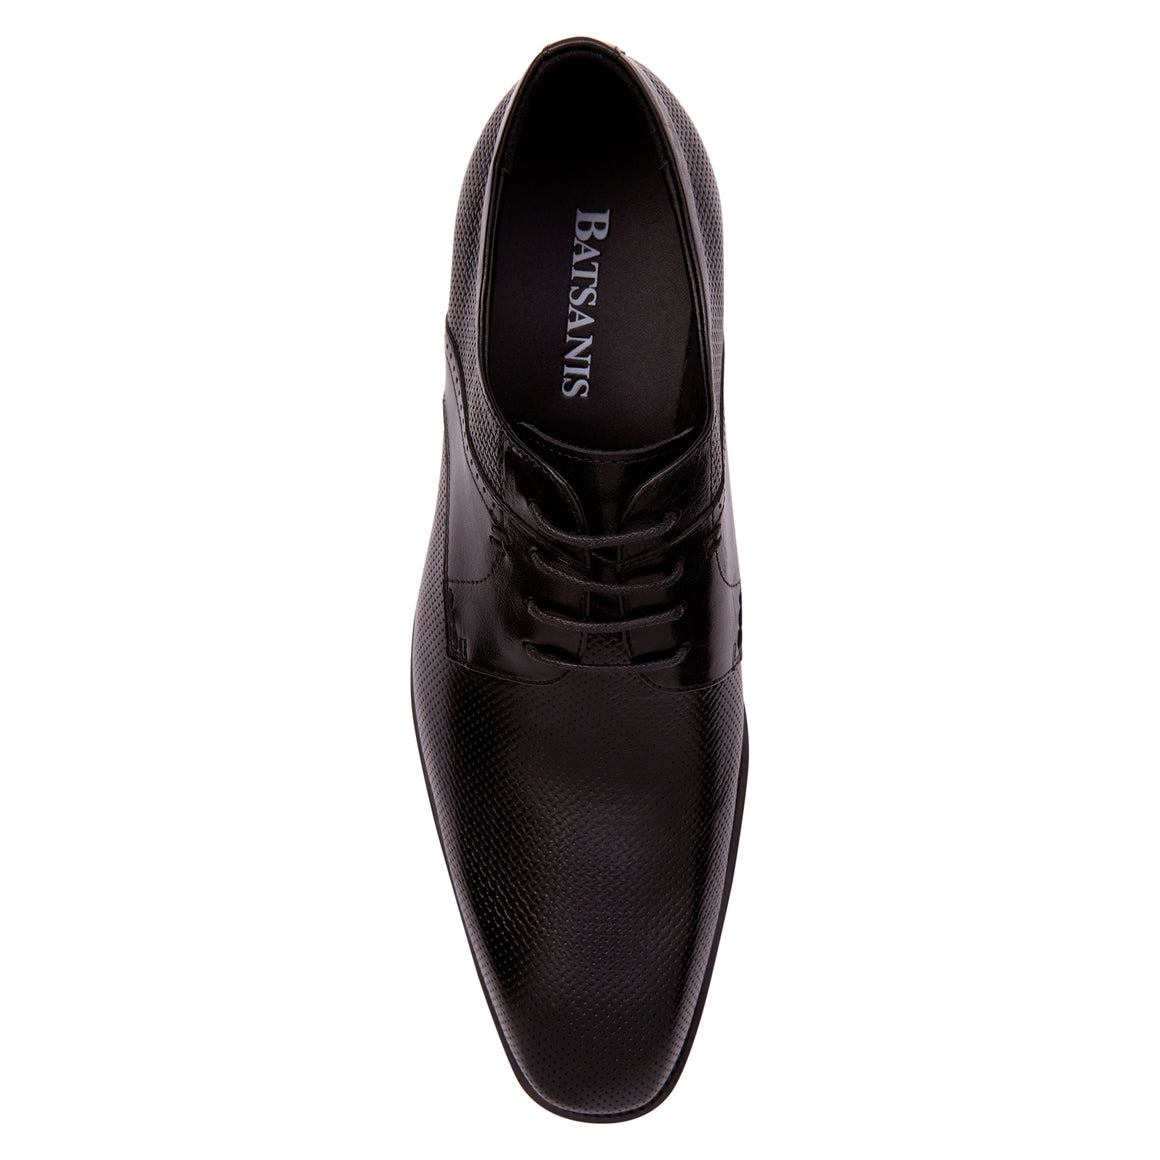 Eric Black Derby Shoes